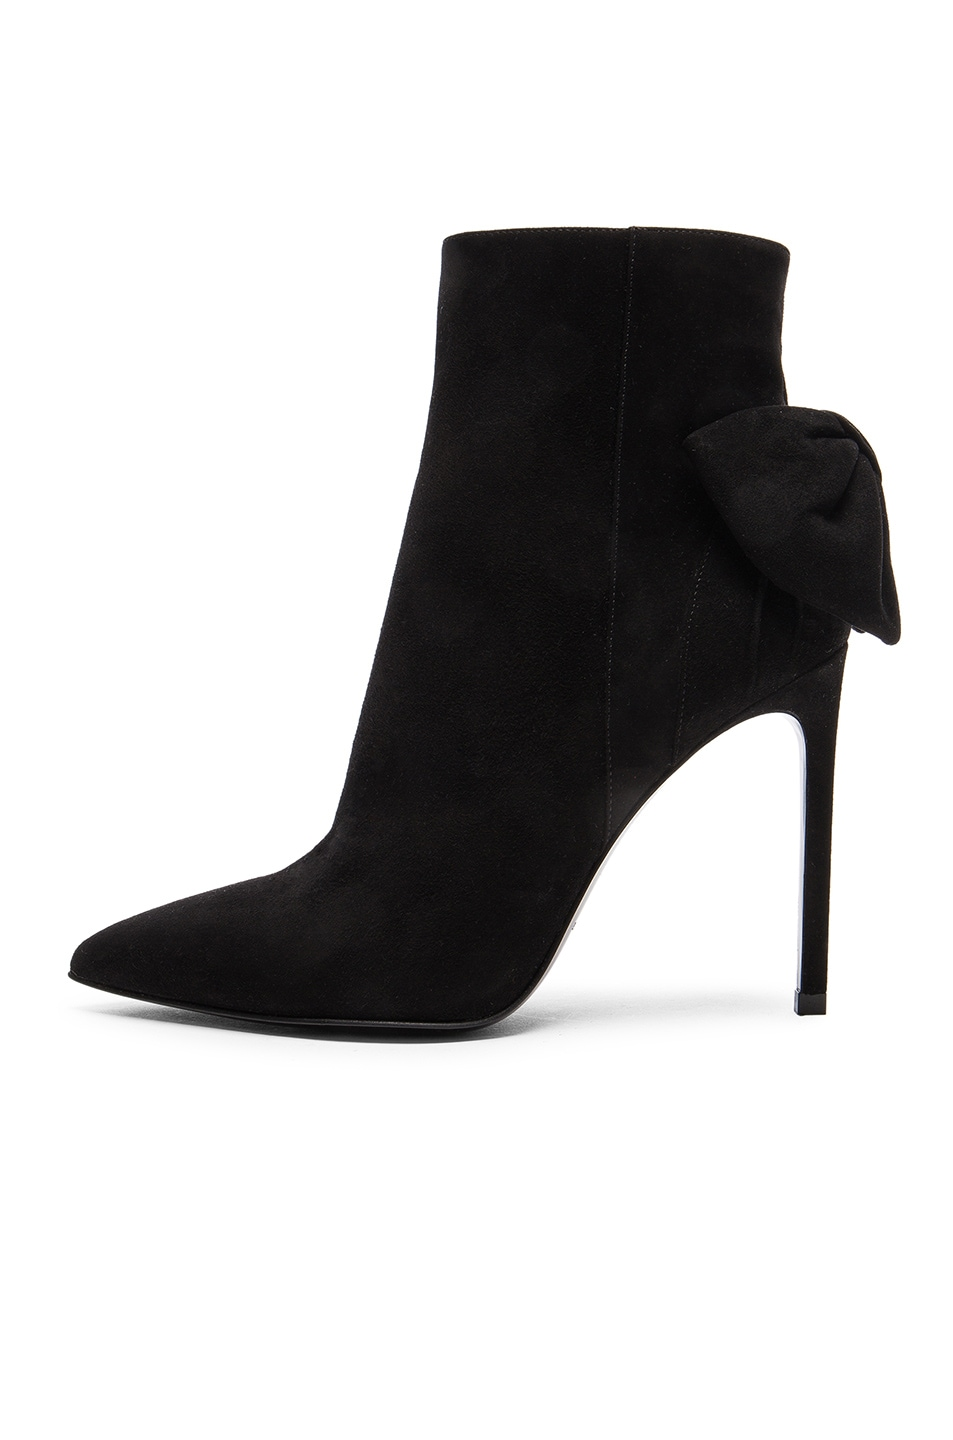 Image 5 of Saint Laurent Paris Skinny Bow Suede Booties in Black